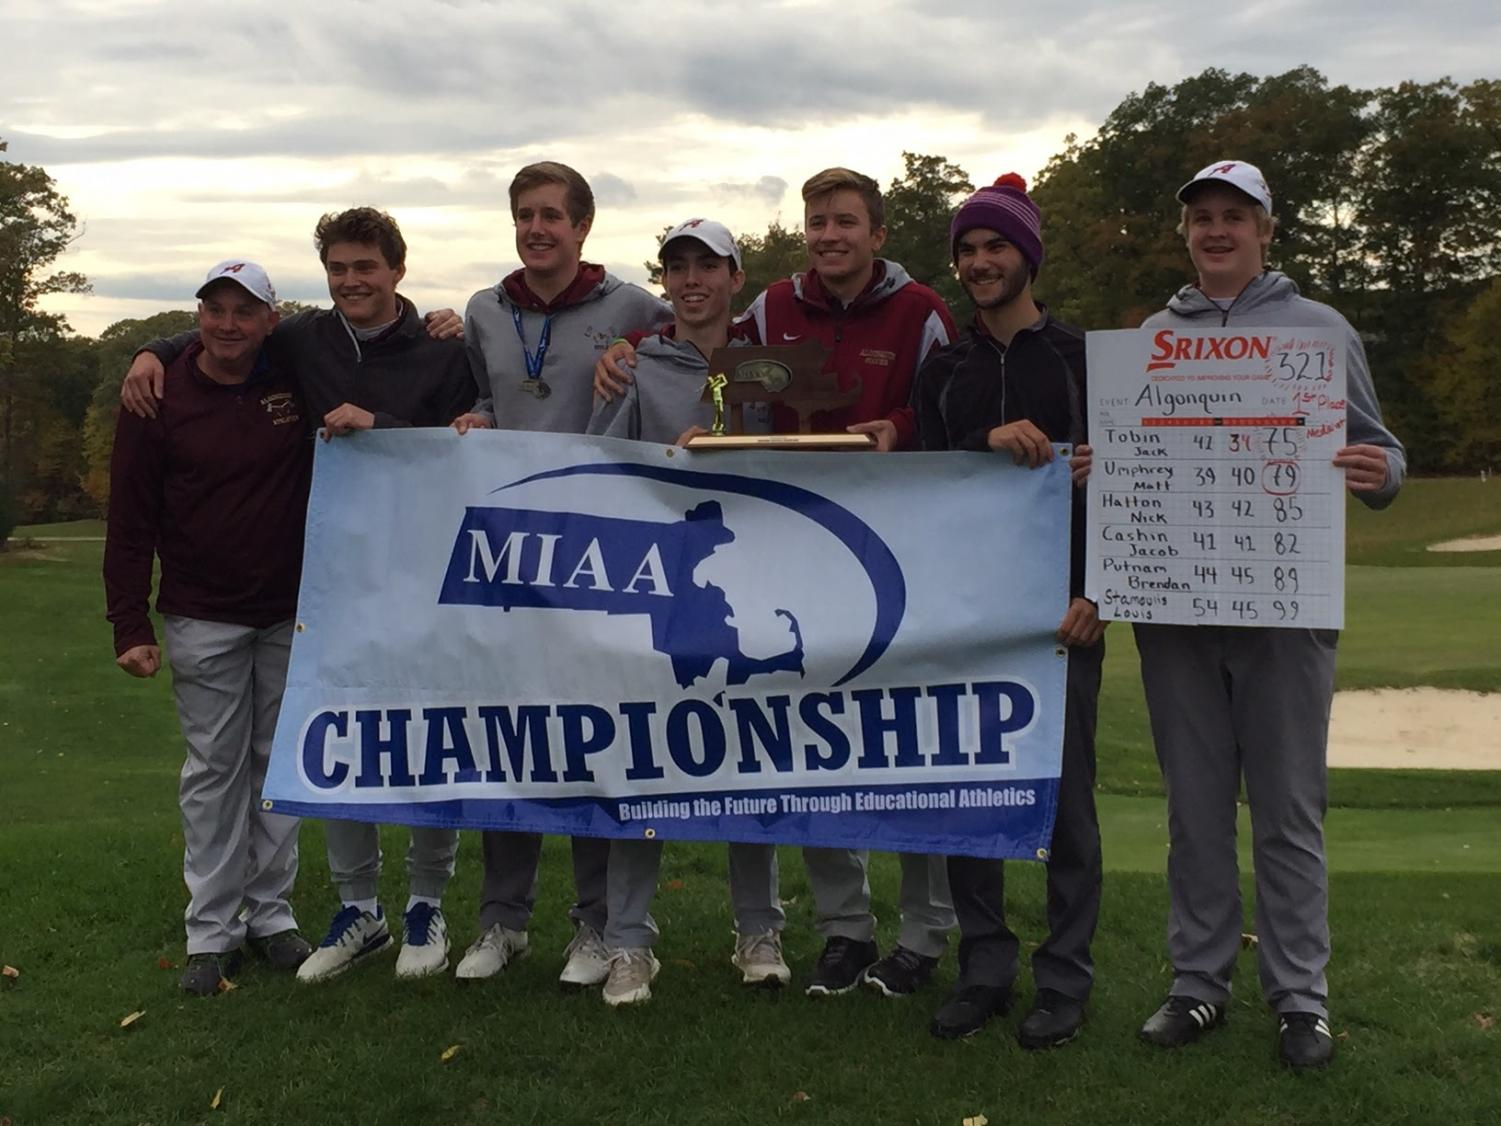 Coach Bob Cullen, seniors Matt Umphrey, Jack Tobin, and Nick Hatton, junior Brendan Putnam, senior Louis Stamoulis, and junior Jacob Cashin celebrate their District Championship win on Monday.